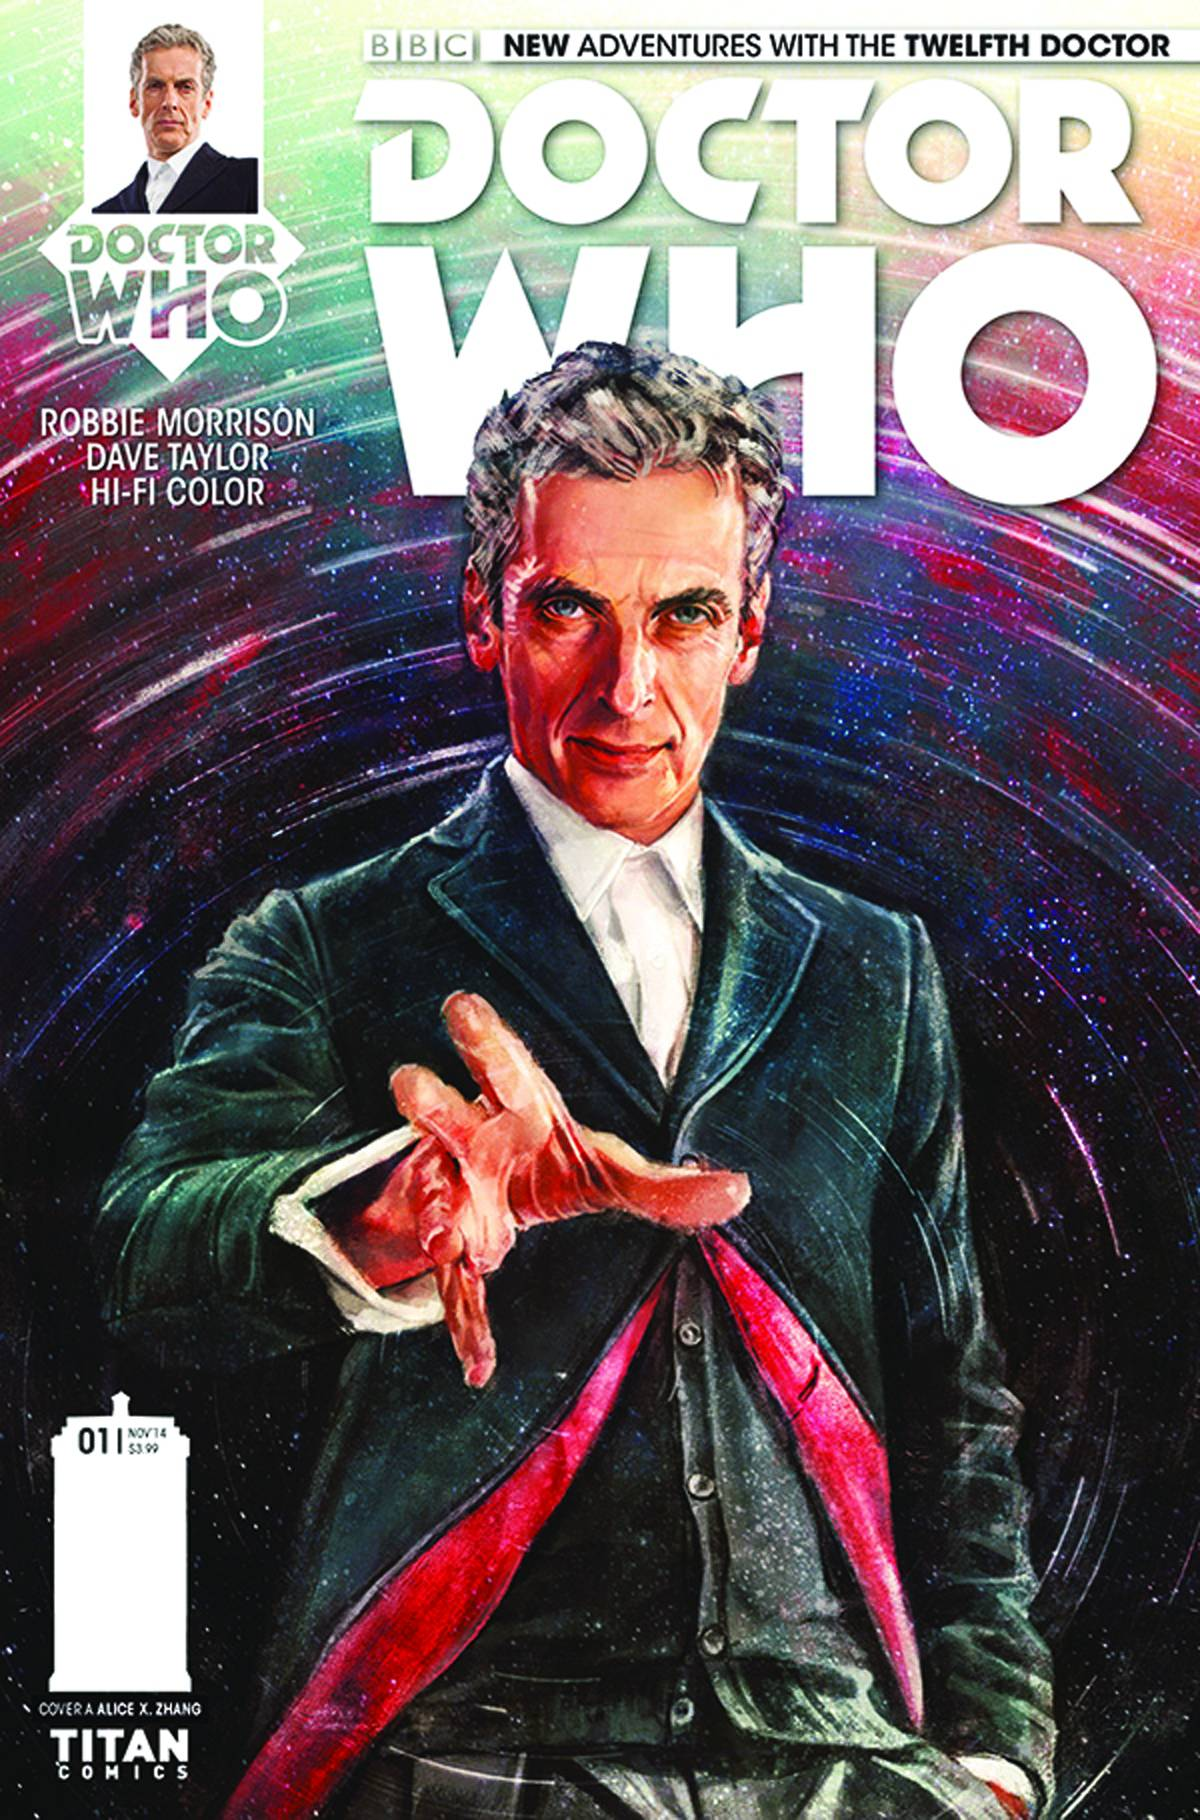 Doctor Who The Twelfth Doctor #1 (alice X Zhang Regular Cover), $399